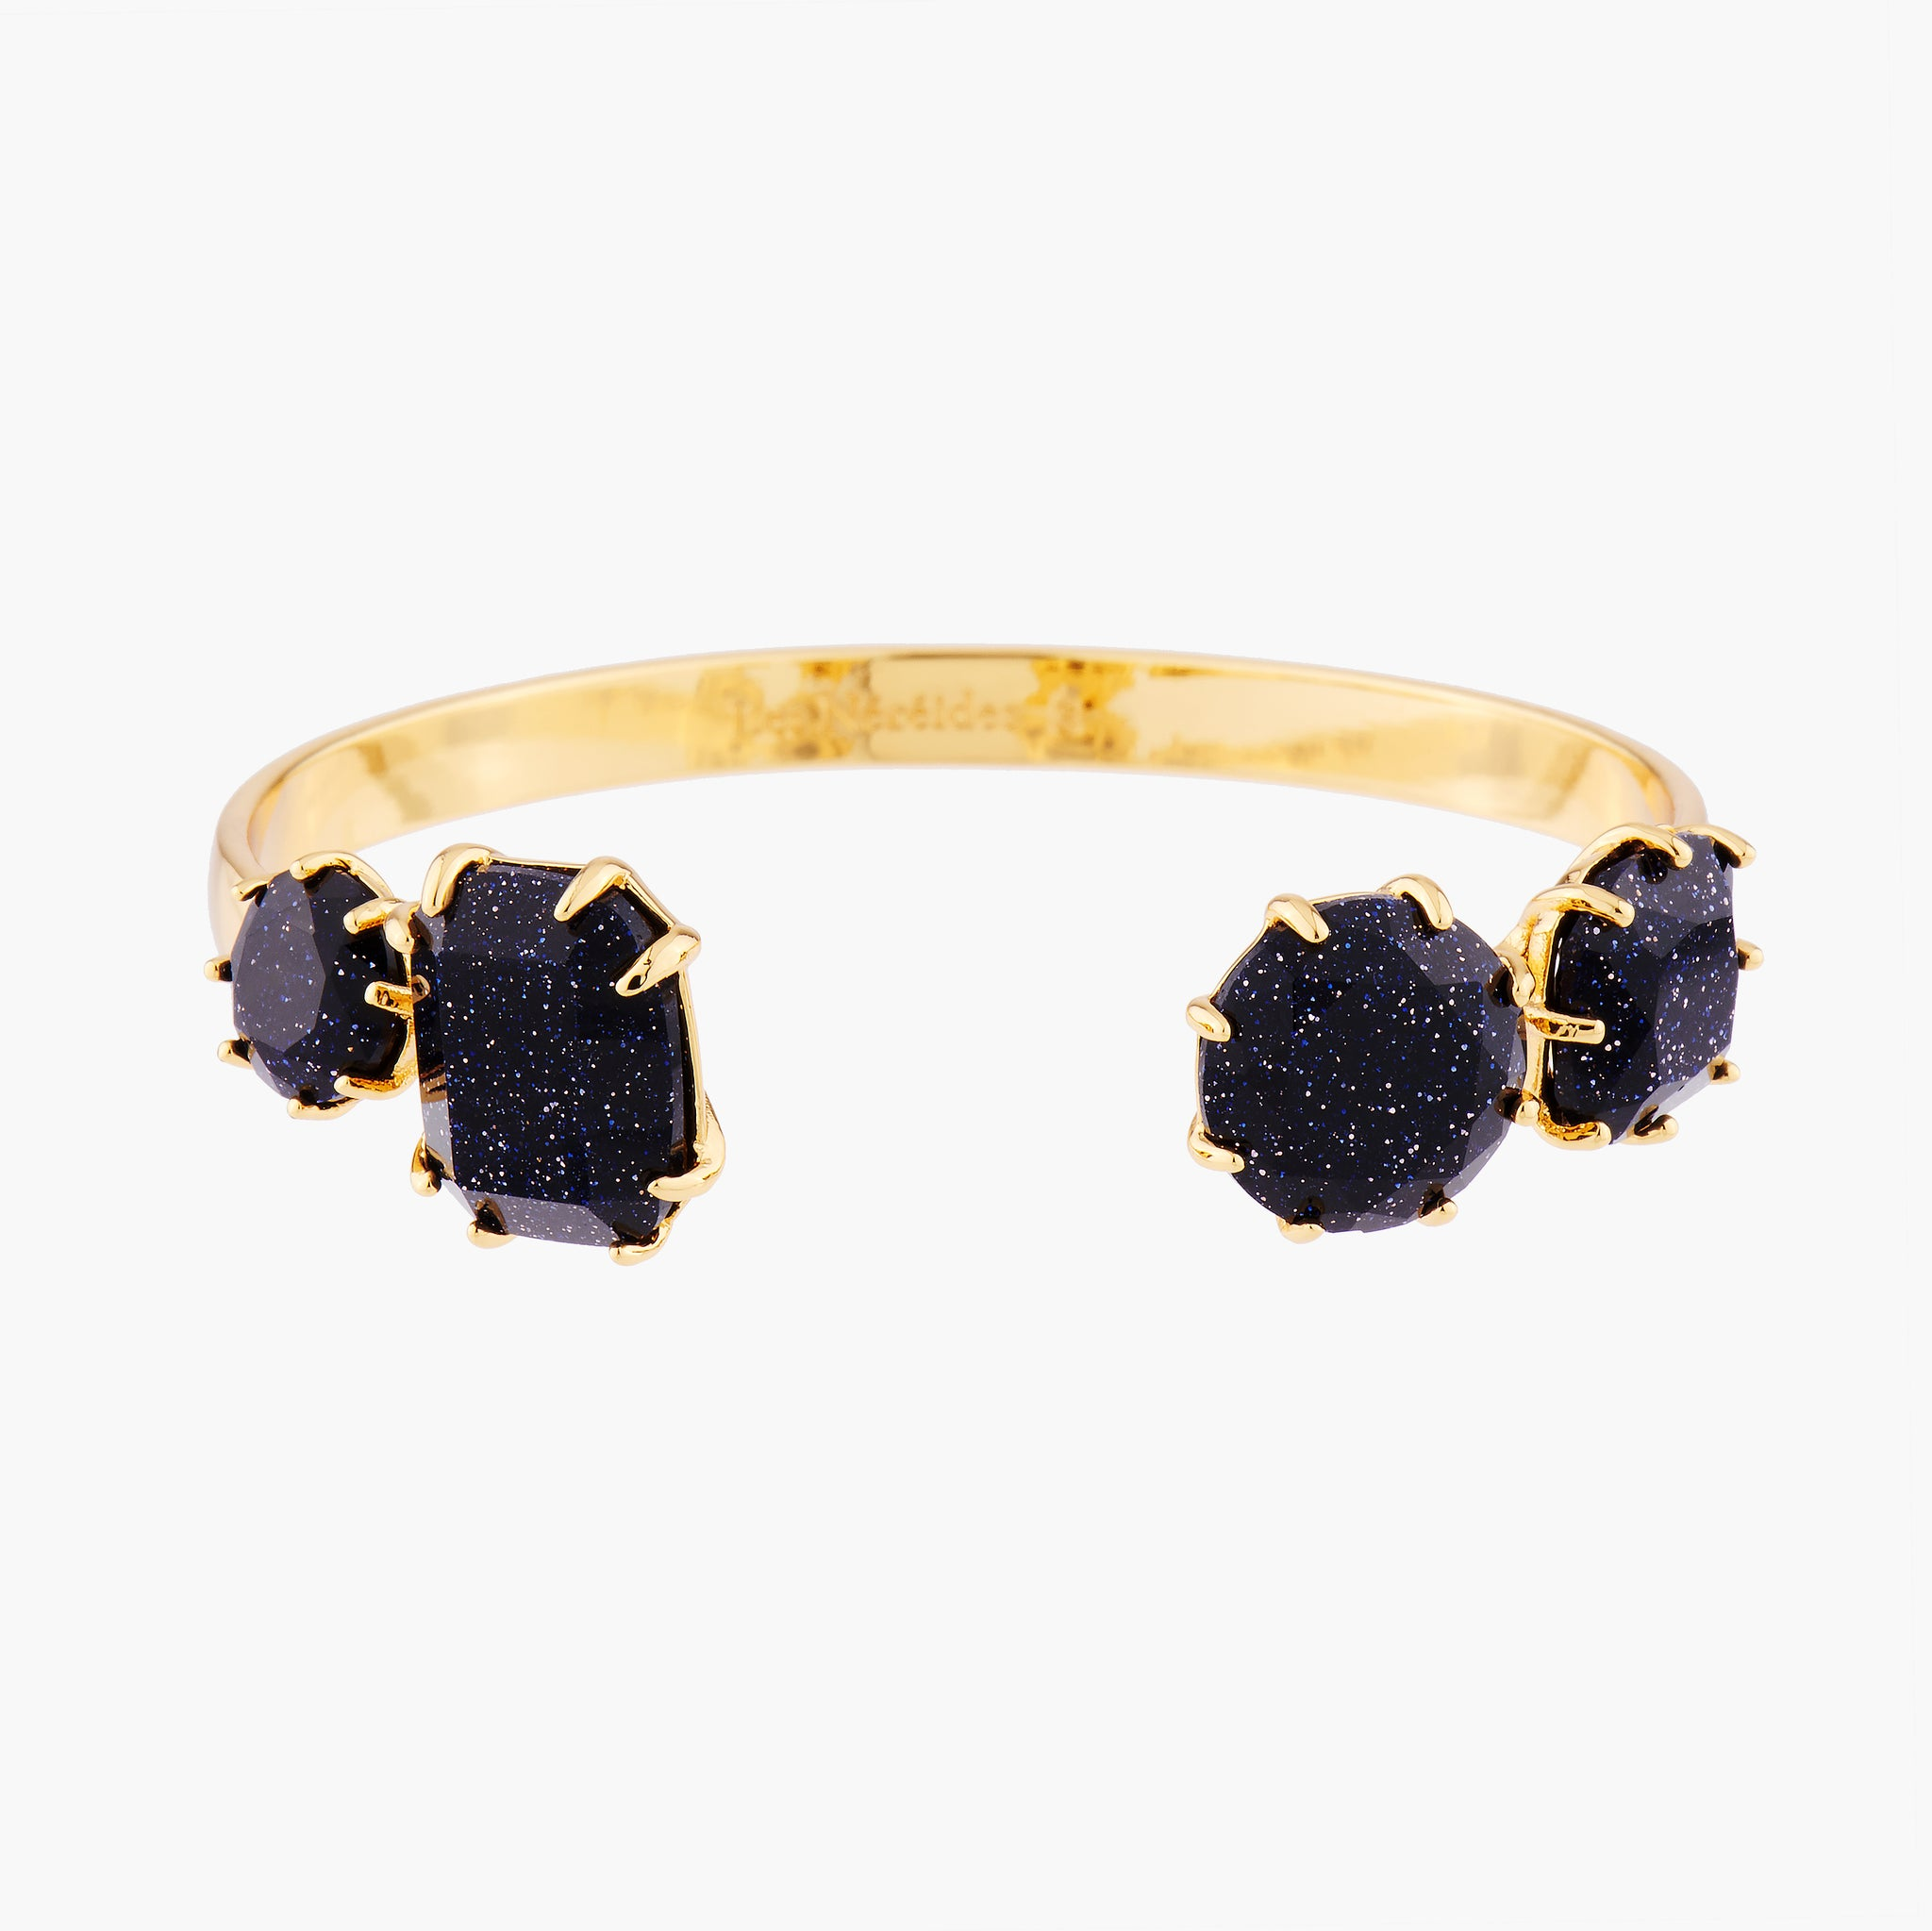 Deep Sparkling Blue 4 Stones La Diamantine Bangle Bracelet